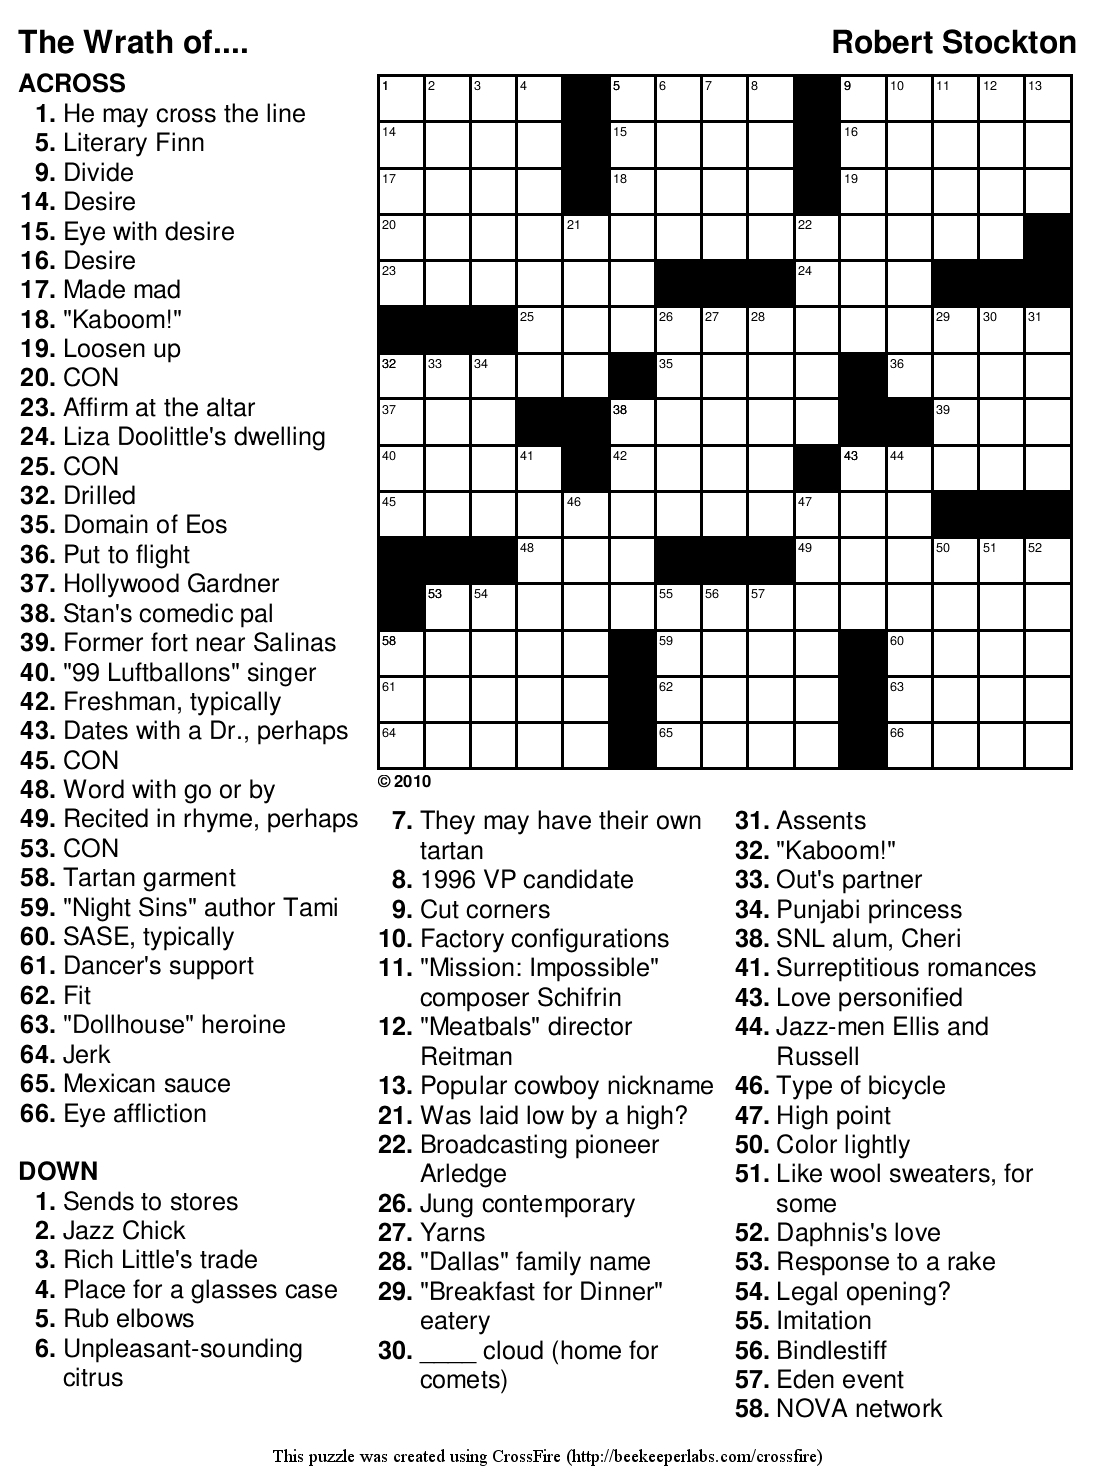 Free Printable Large Print Crossword Puzzles | M3U8 - Large Printable Crossword Puzzles